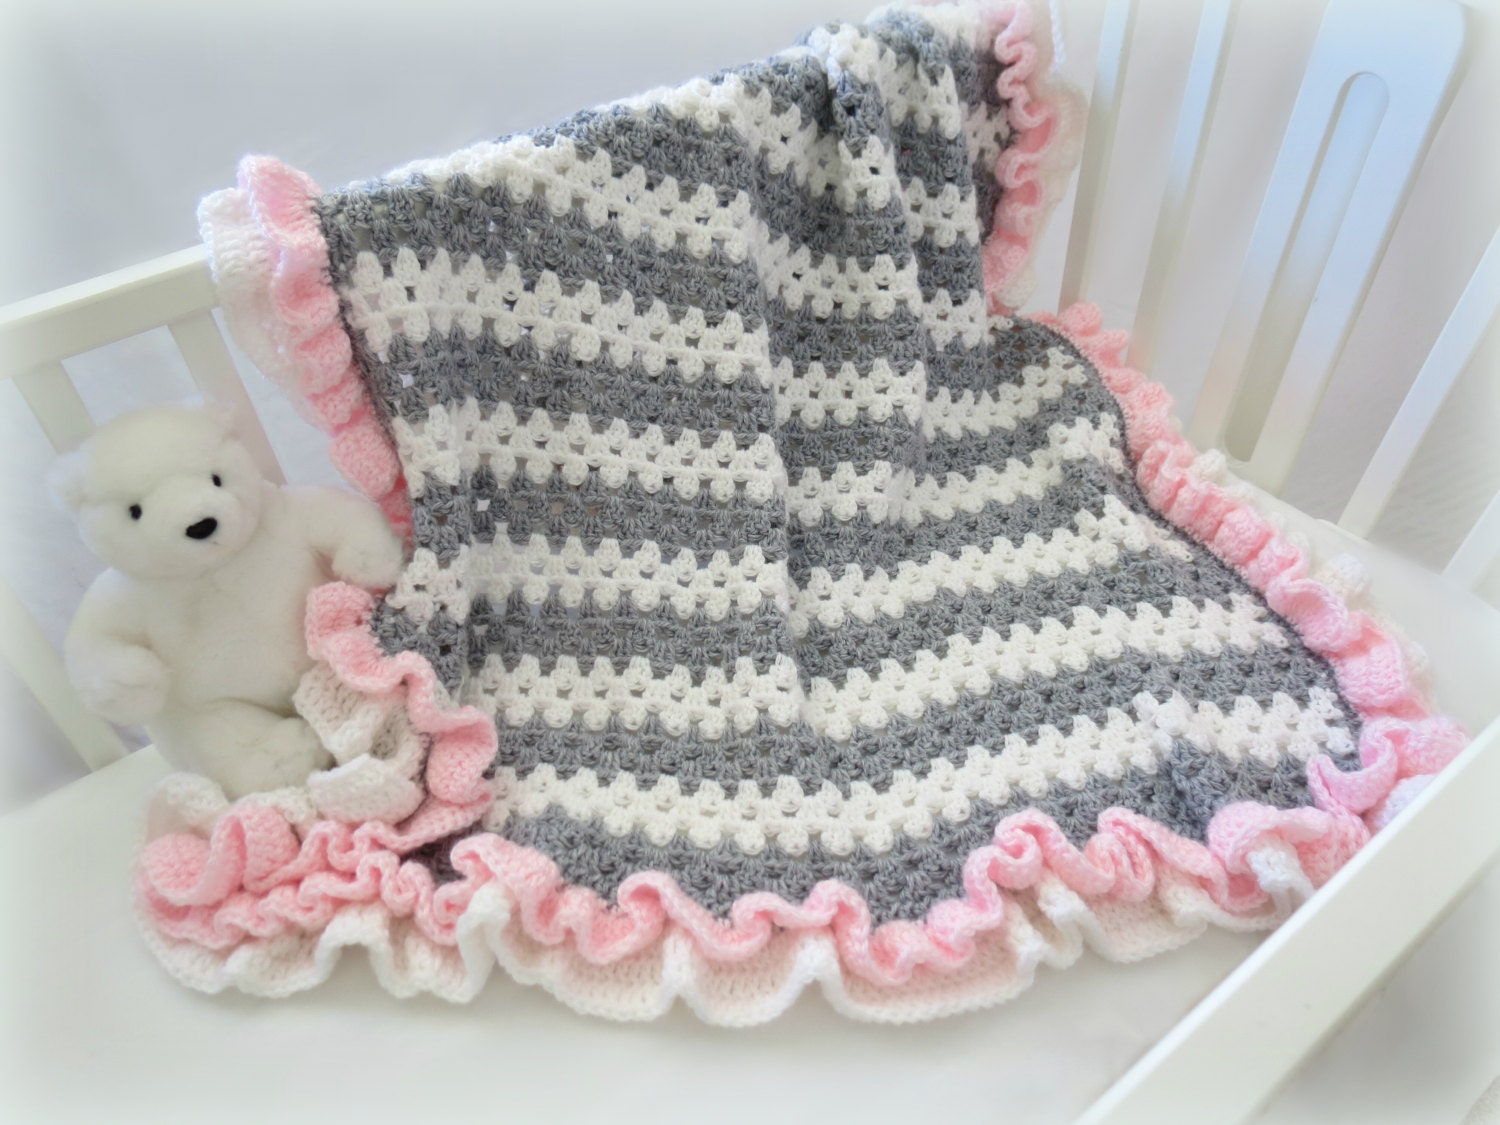 Crochet baby blanket pattern baby crochet blanket afghan crochet baby blanket pattern baby crochet blanket afghan crochet pattern little granny ruffle crochet patterns by deborah oleary bankloansurffo Gallery